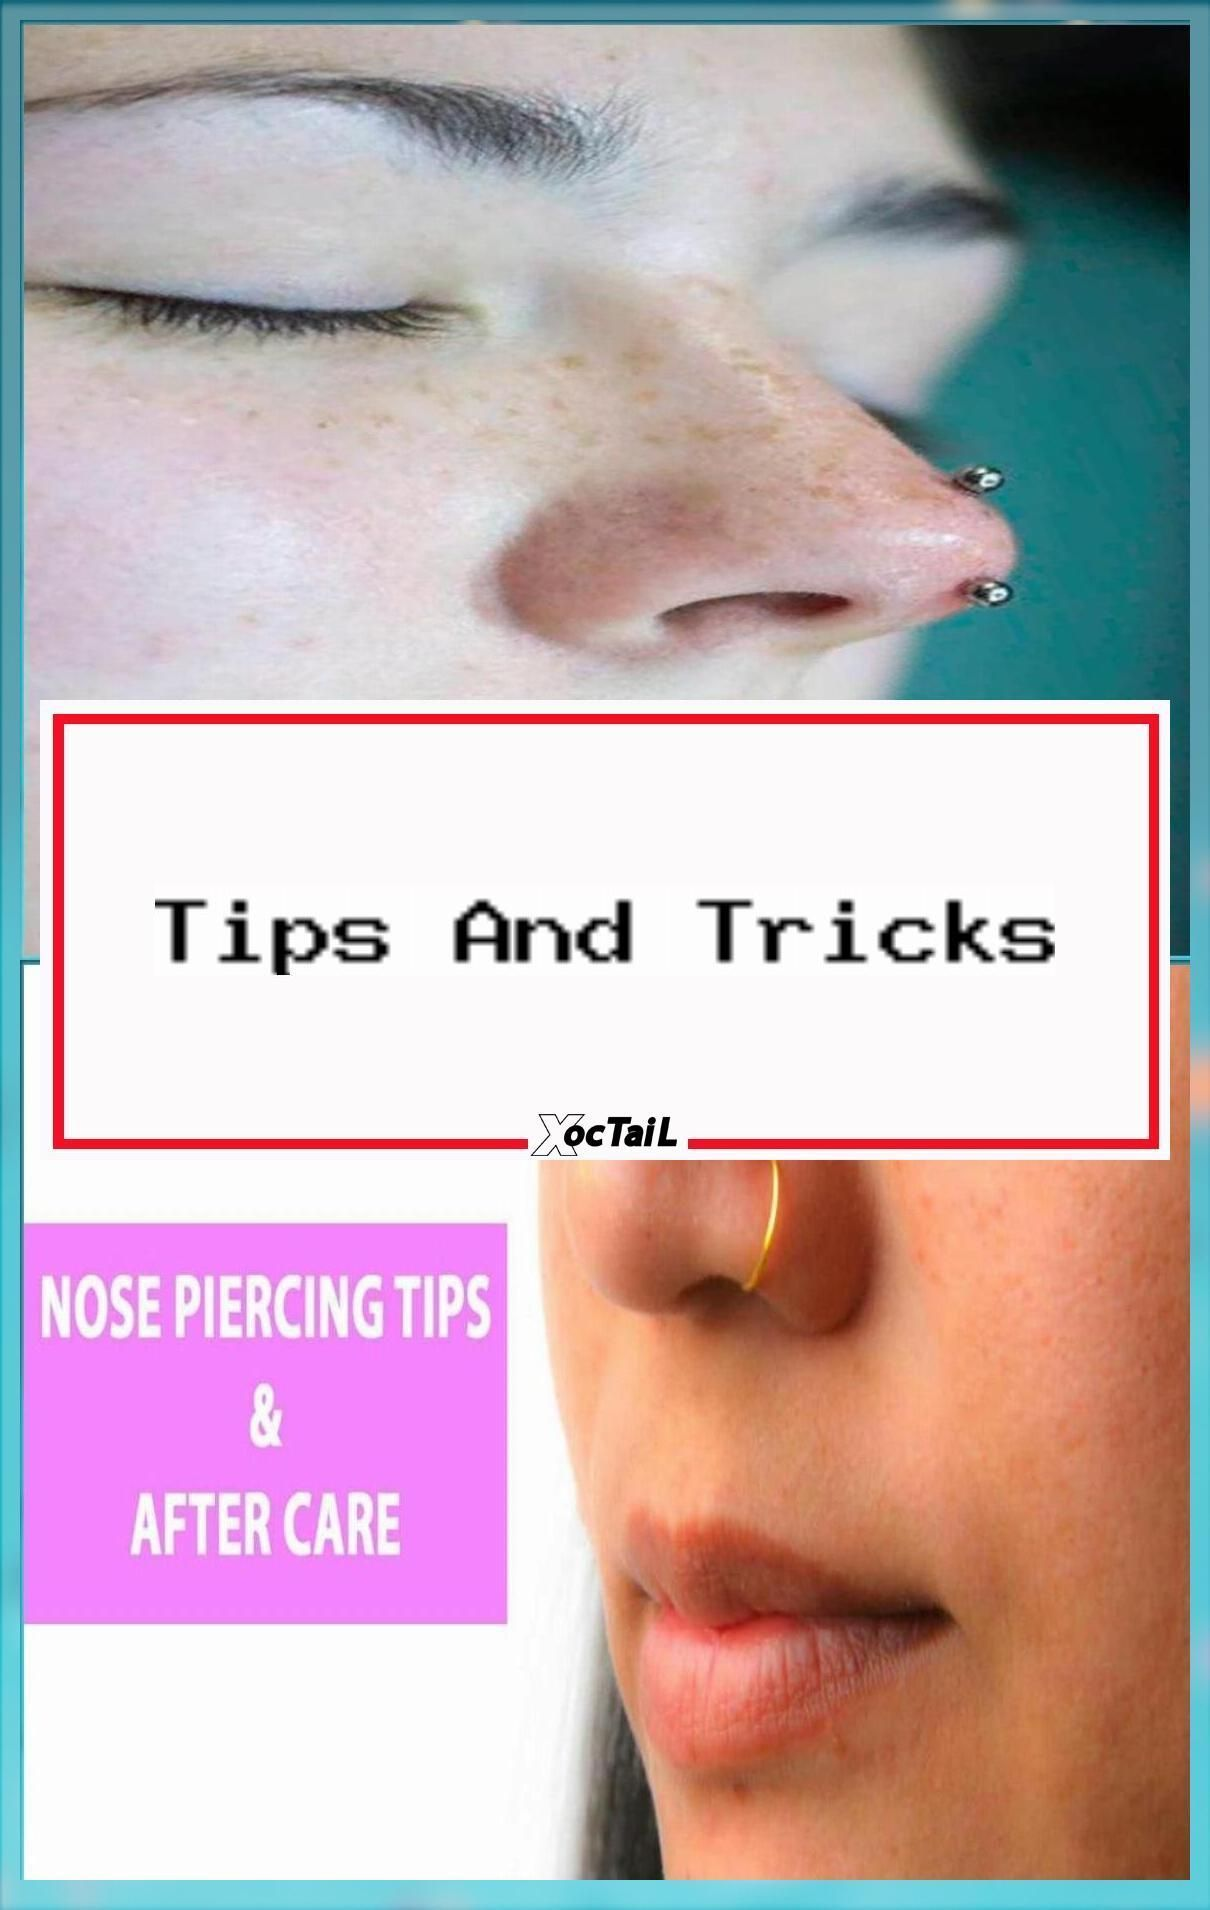 Care Fast Healing Health Nose Piercing Care